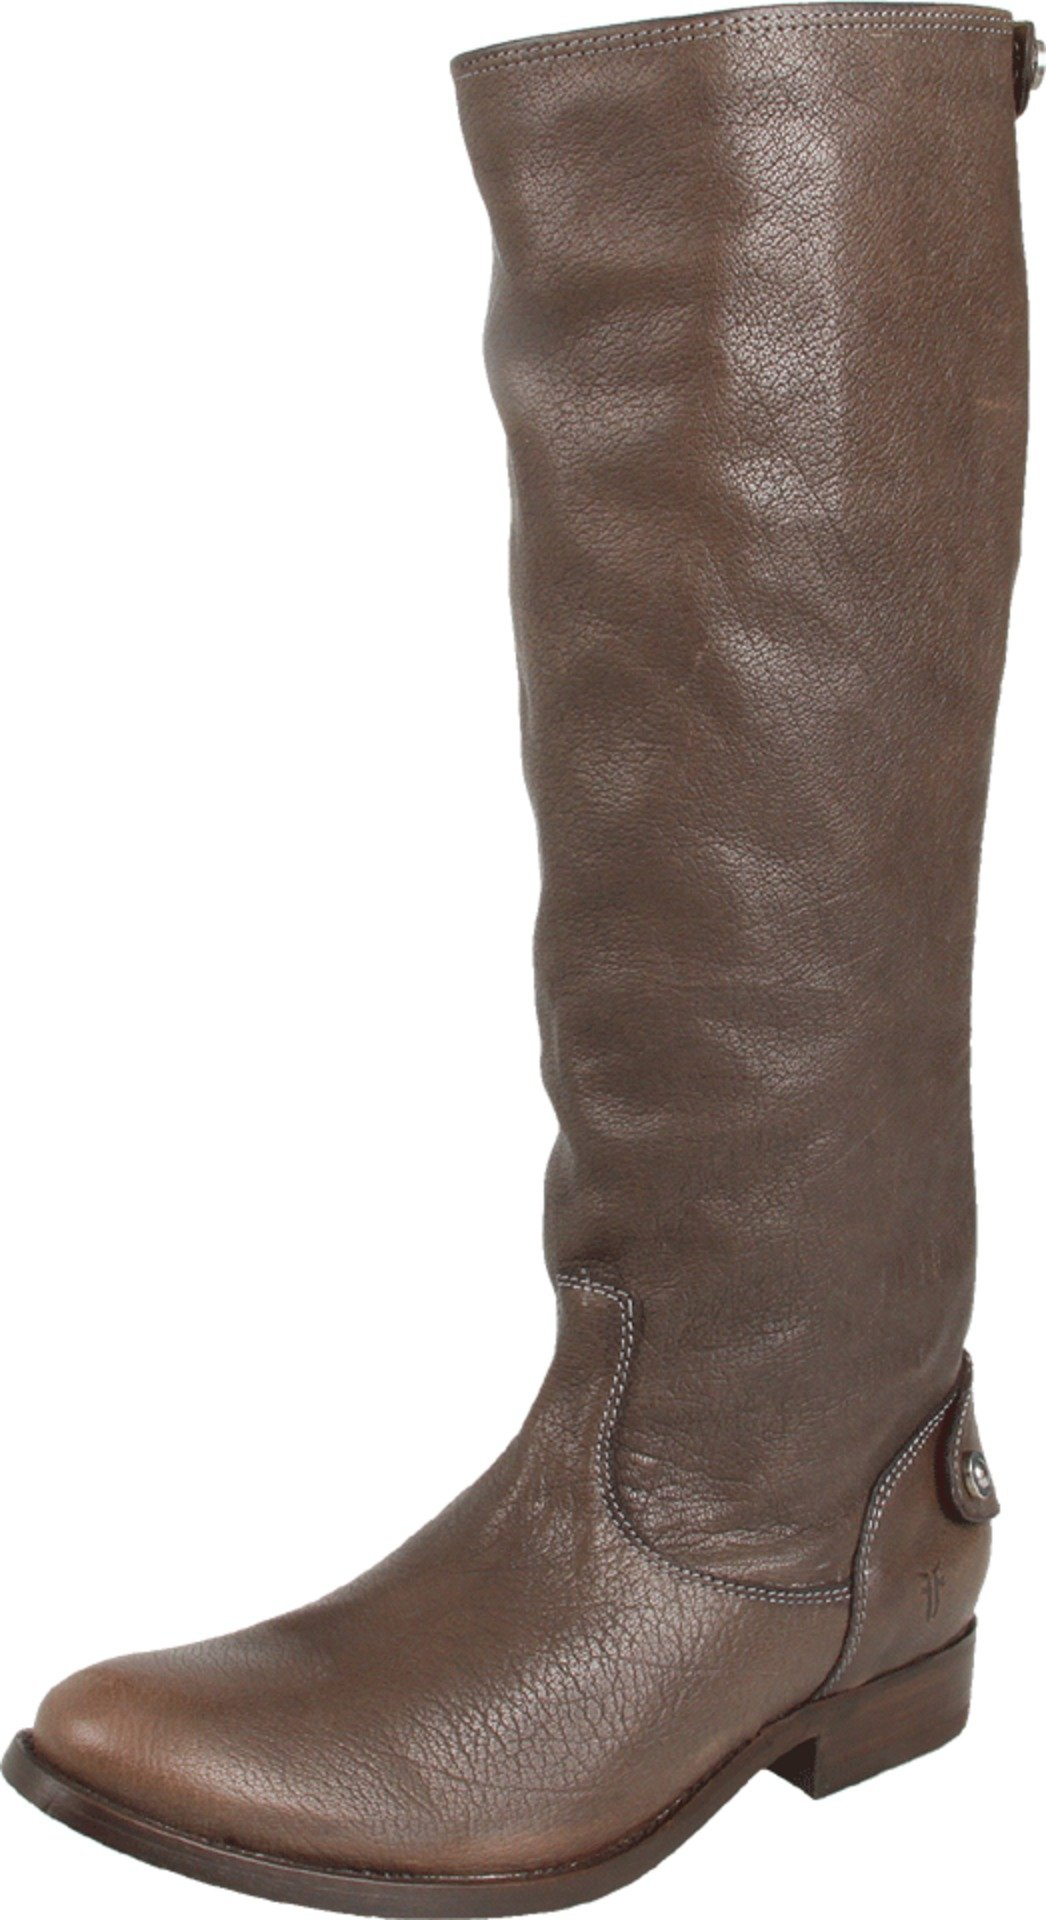 FRYE Women's Melissa Button Back Zip Knee-High Boot, Grey Antique Soft Full Grain, 7.5 M US